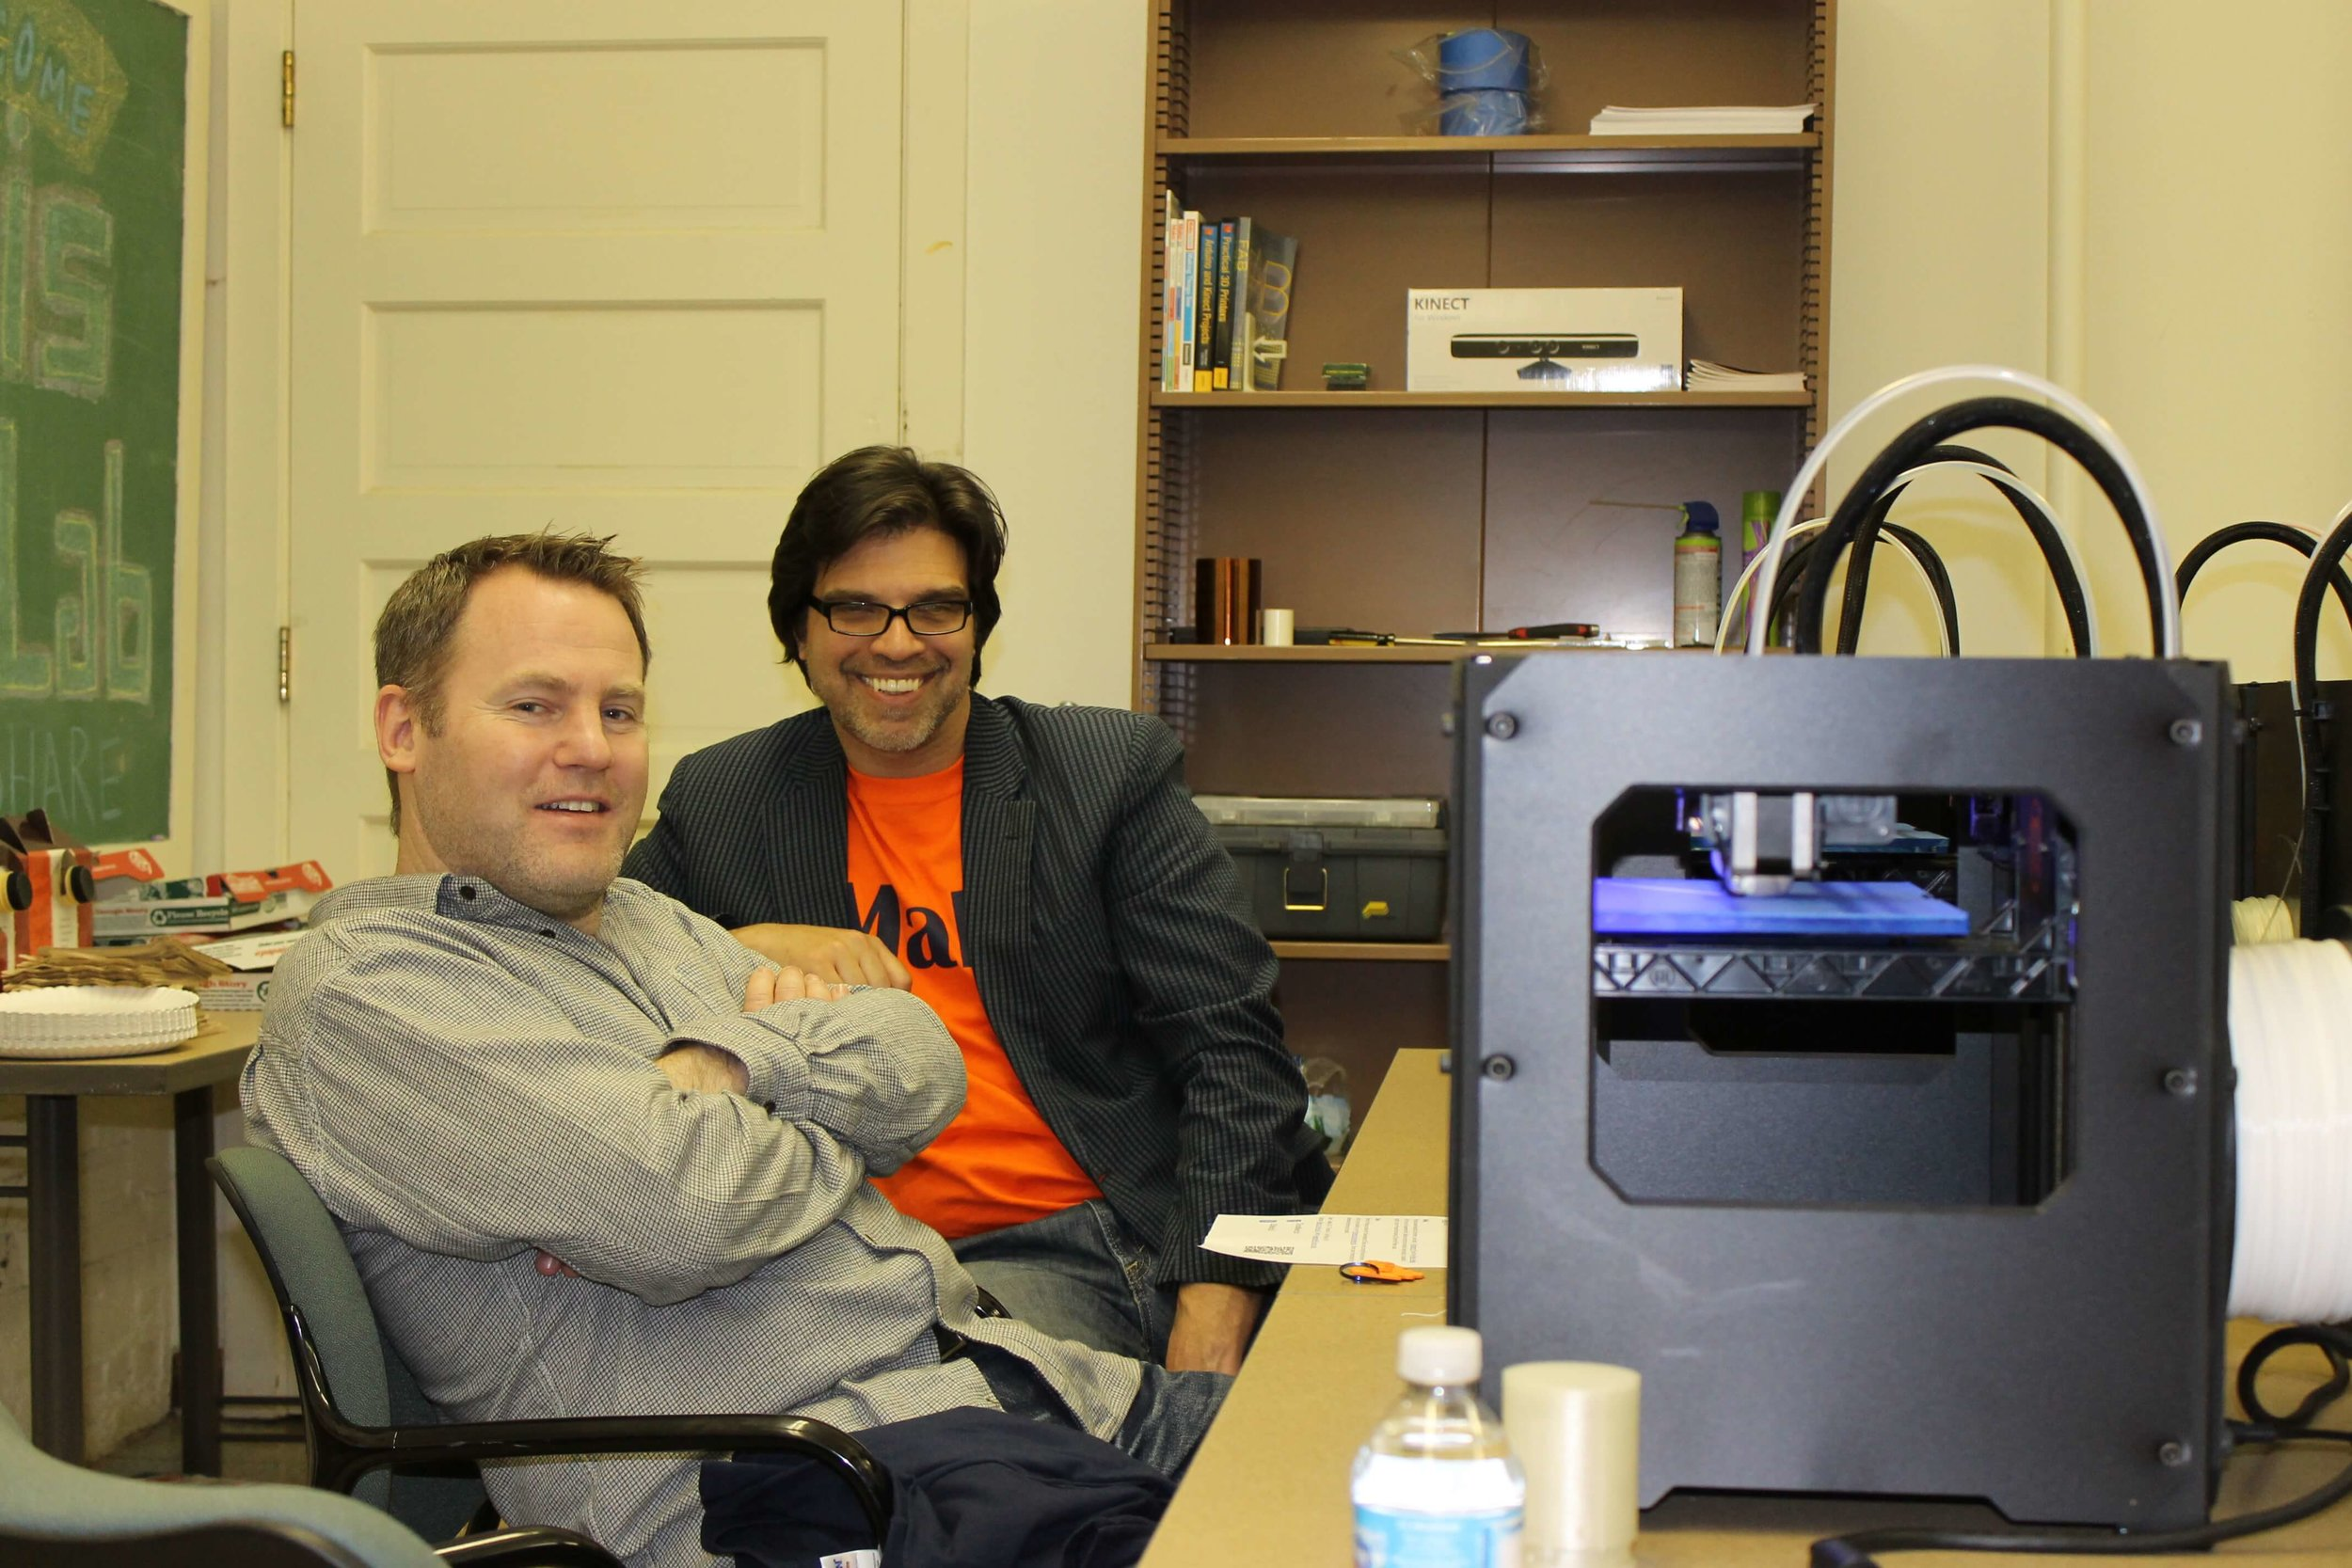 Darren Dahl, Senior Associate Dean, Faculty and Research Fred H. Siller Professor in Applied Marketing Research at University of British Columbia tries out 3D printing